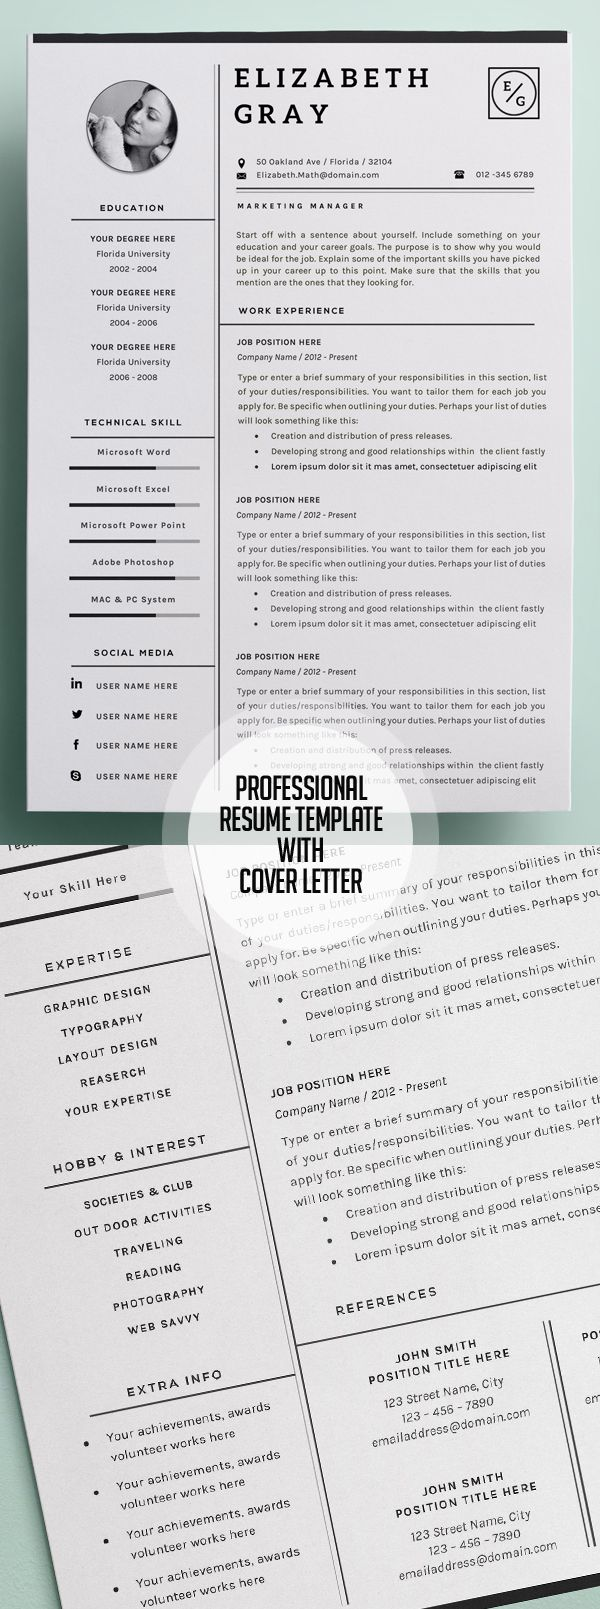 Opposenewapstandardsus  Gorgeous  Resume Ideas On Pinterest  Resume Resume Templates And  With Handsome Professional And Modern Resume Template With Page Cover Cvtemplate With Beauteous Resume Microsoft Word Template Also What Should A Resume Have In Addition Real Estate Salesperson Resume And Purdue Cco Resume As Well As Medical Receptionist Resume Objective Additionally Sample Resume Office Manager From Pinterestcom With Opposenewapstandardsus  Handsome  Resume Ideas On Pinterest  Resume Resume Templates And  With Beauteous Professional And Modern Resume Template With Page Cover Cvtemplate And Gorgeous Resume Microsoft Word Template Also What Should A Resume Have In Addition Real Estate Salesperson Resume From Pinterestcom